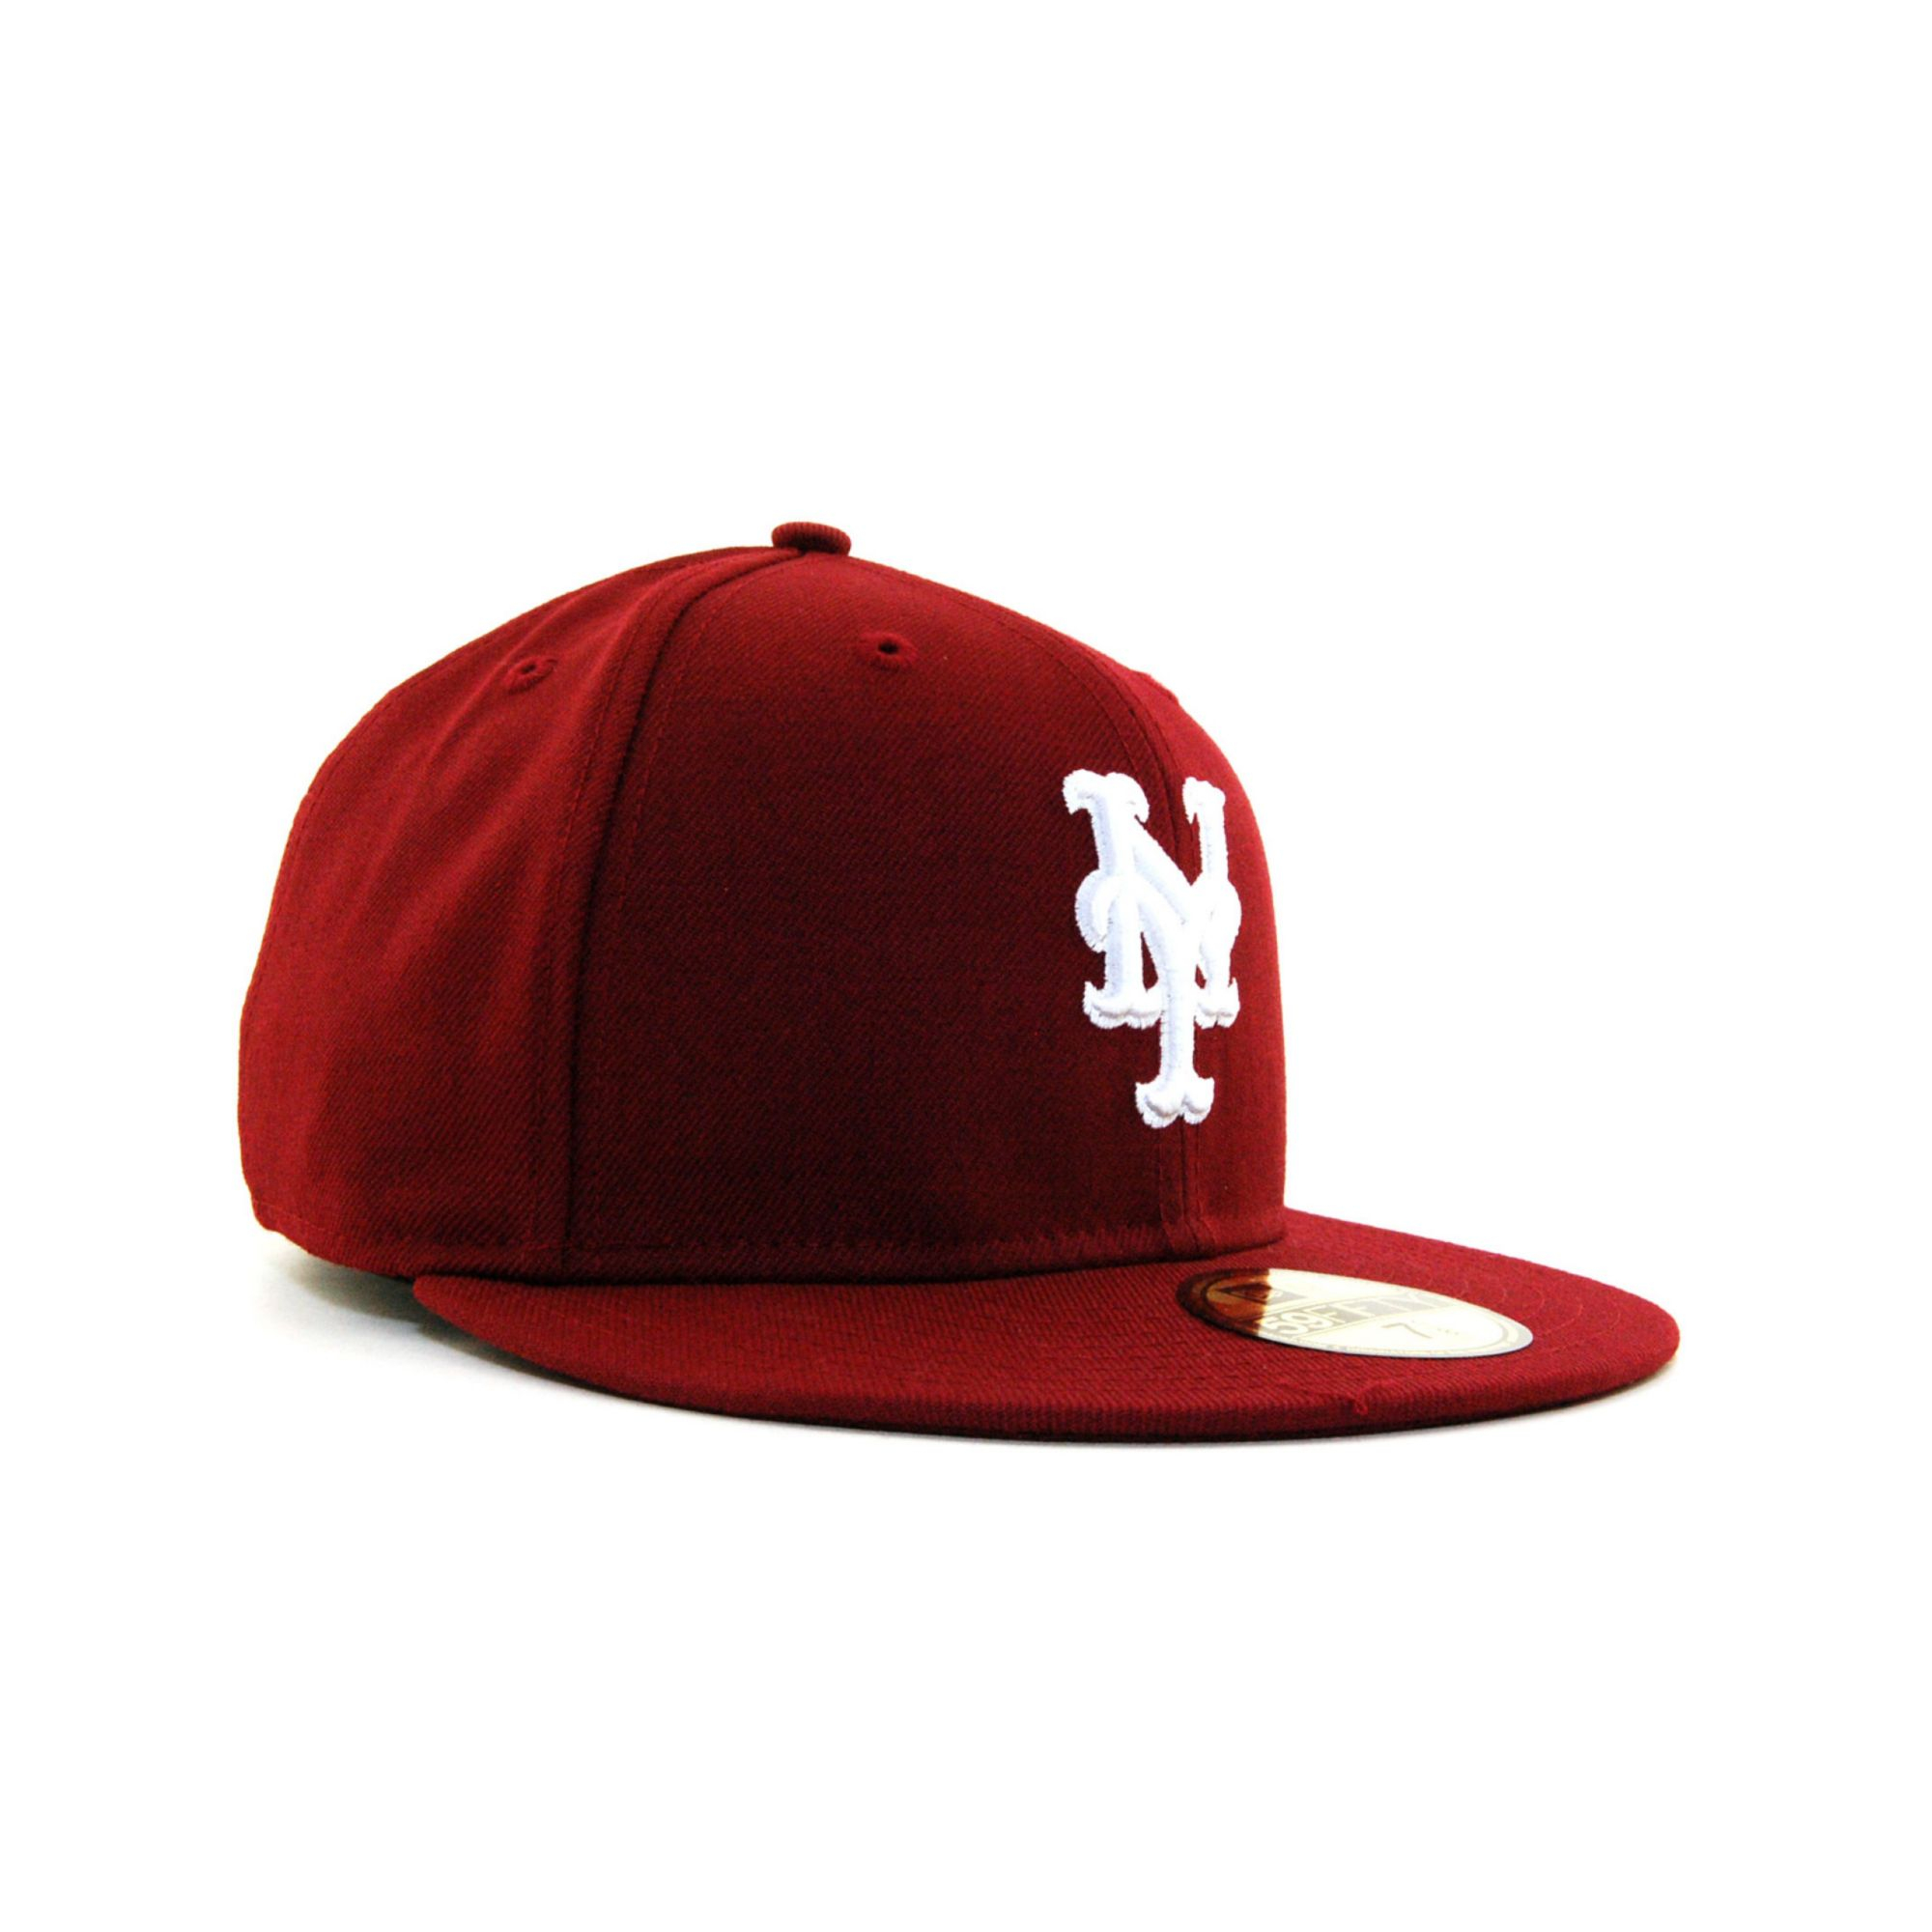 new style 370c4 8eaf2 promo code for new york mets 2015 all star hat costume f9cfa f4798